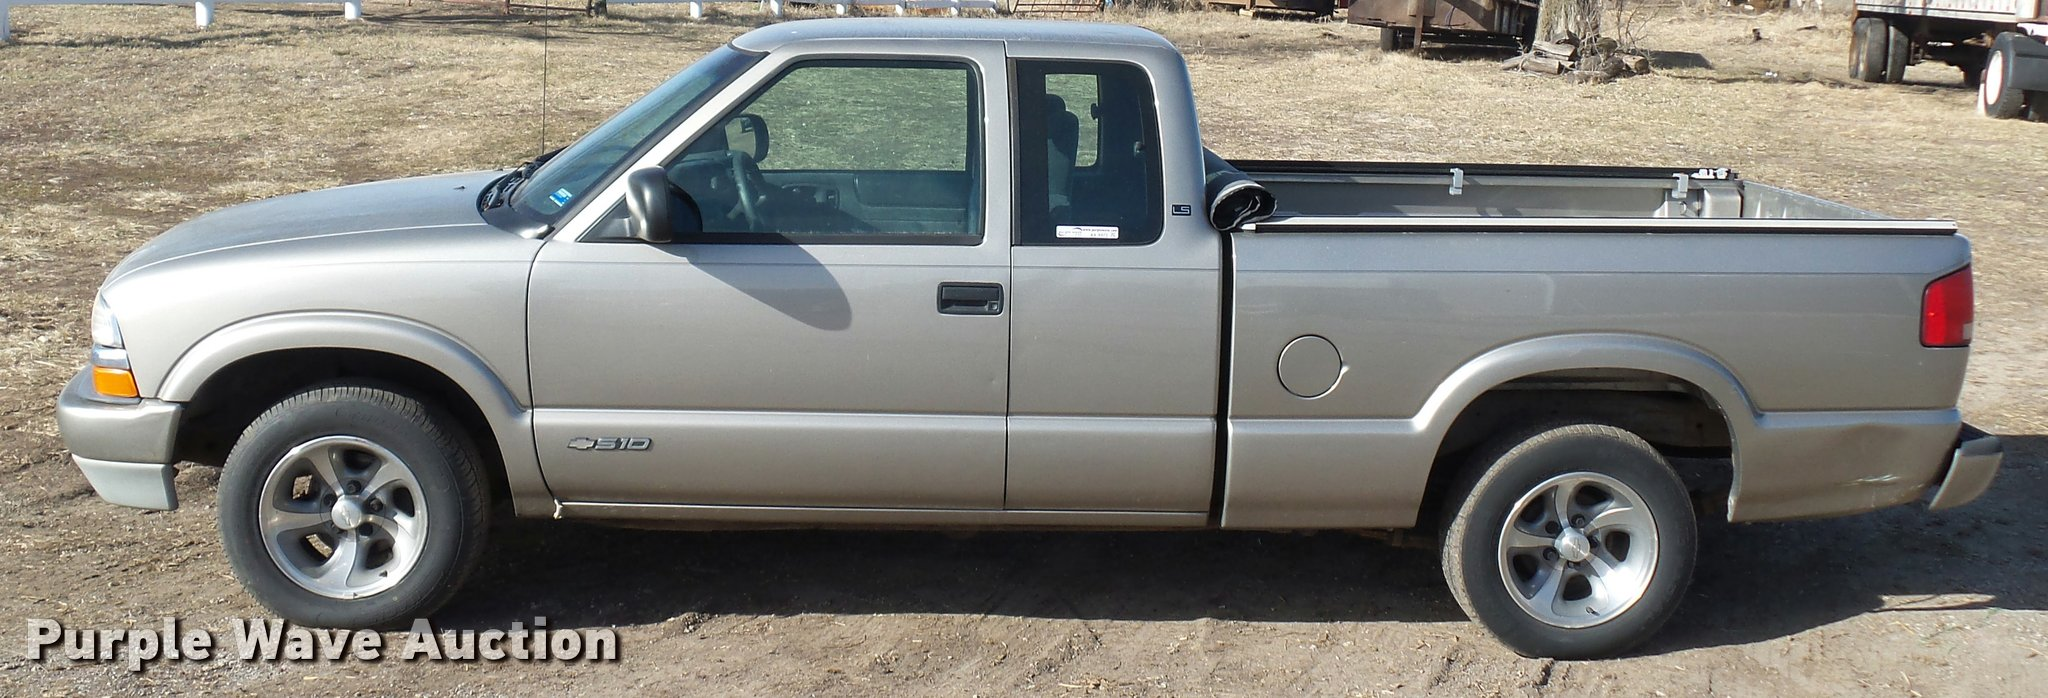 All Chevy 2000 chevrolet s-10 : 2000 Chevrolet S10 Ext. Cab pickup truck   Item AX9372   SOL...